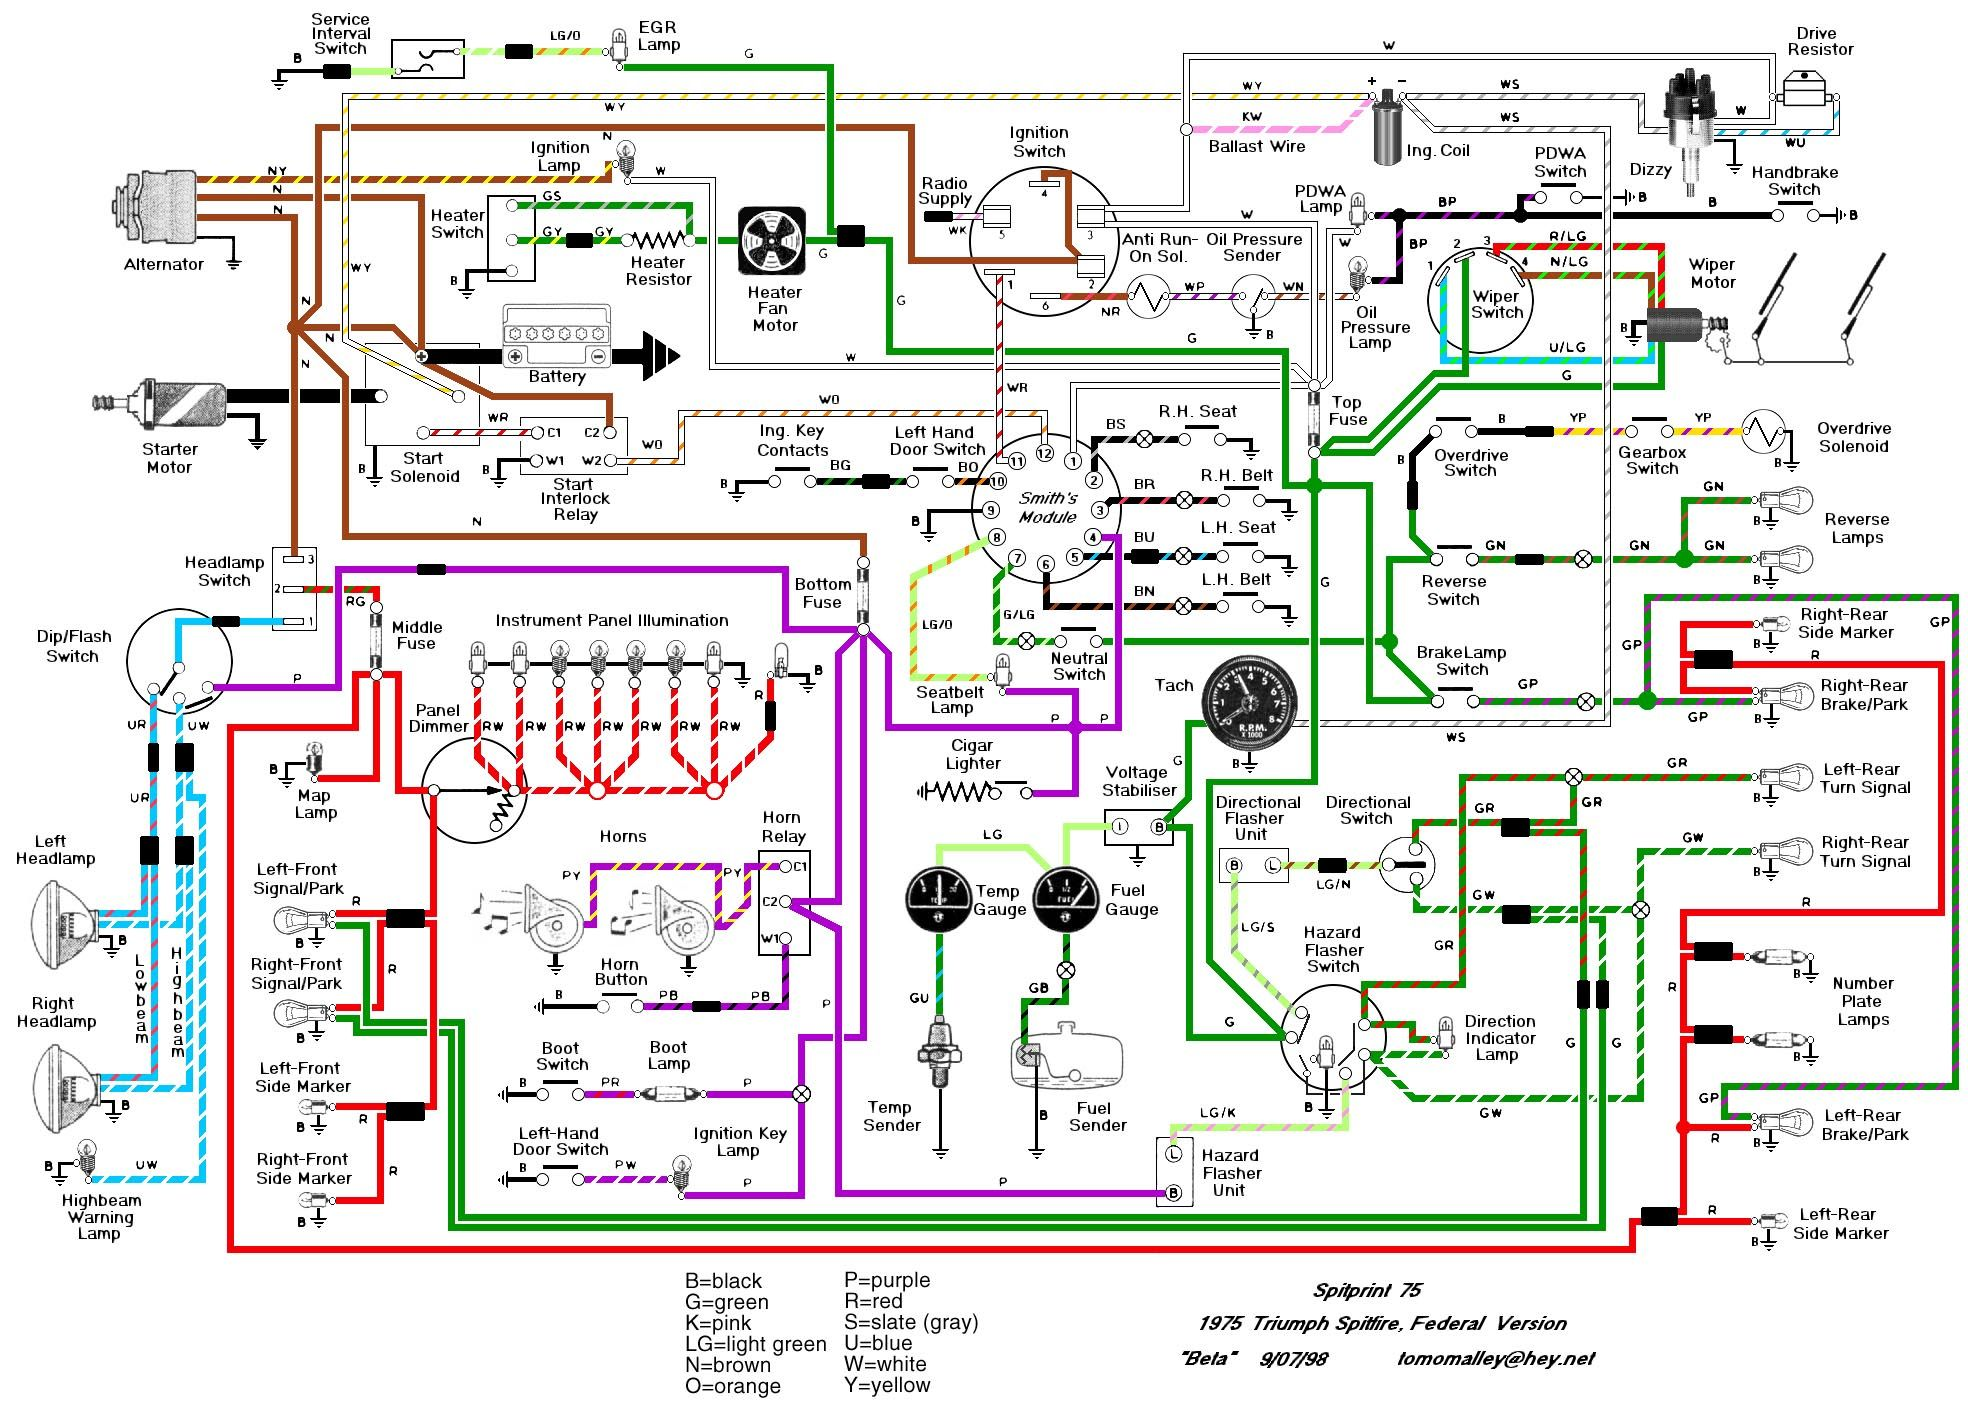 Ihc Wiring Diagram Data Schema Case Schematic